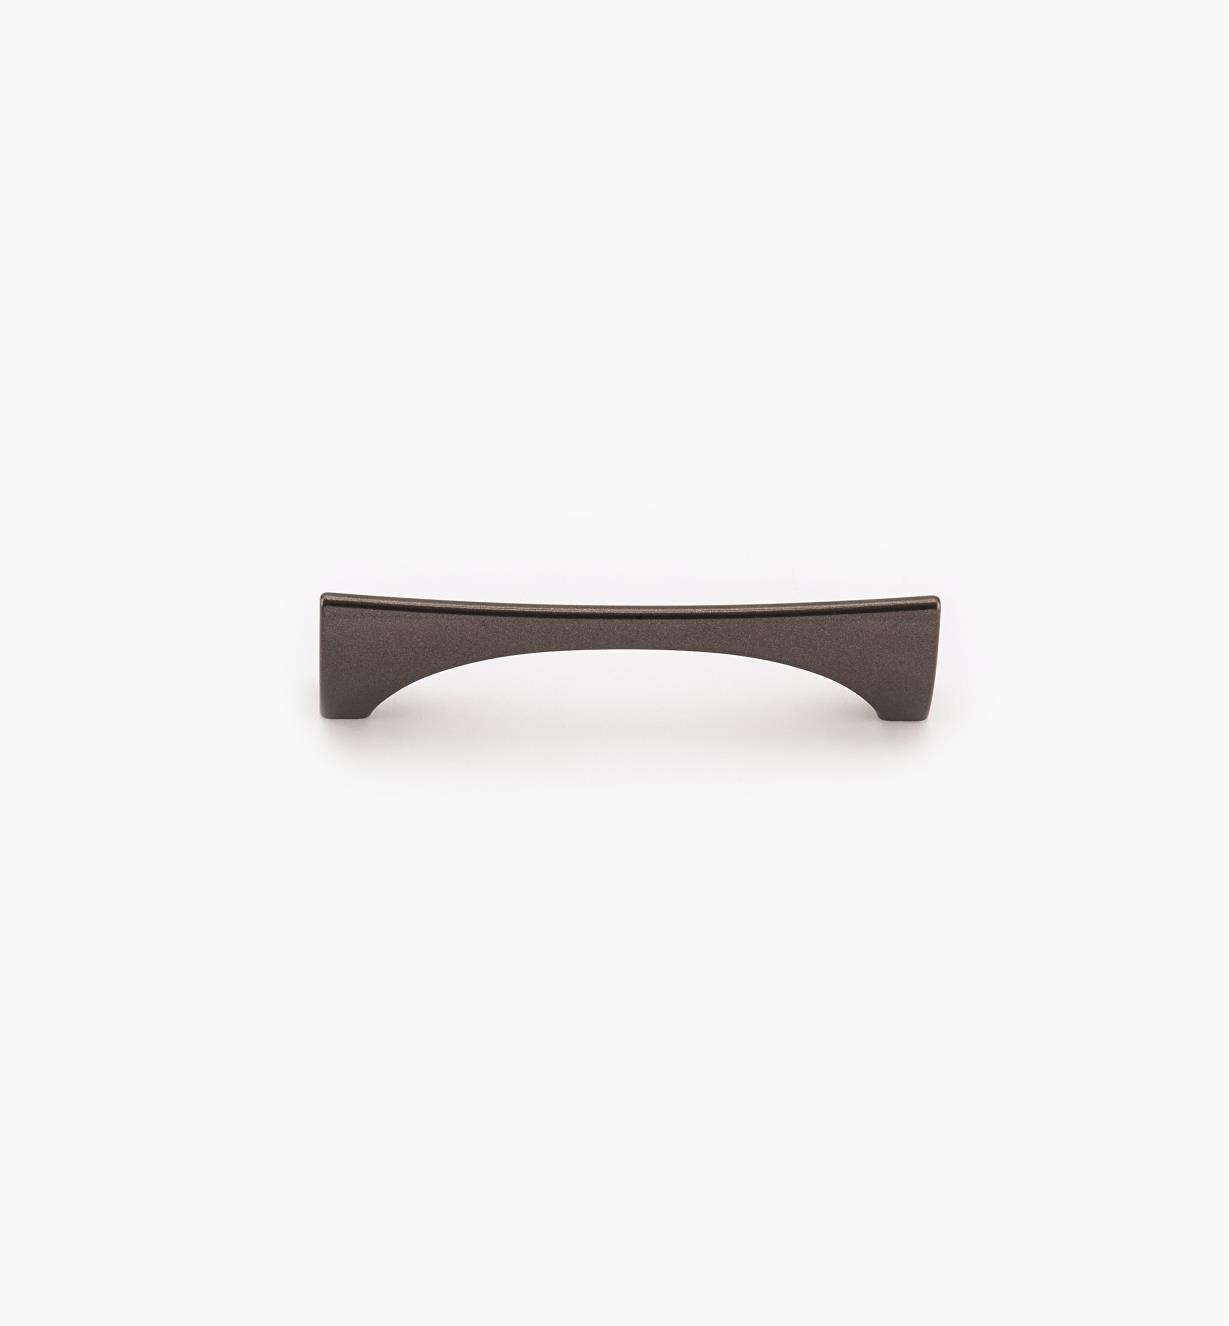 02W3930 - Niteroi 96mm Dark Brown Handle